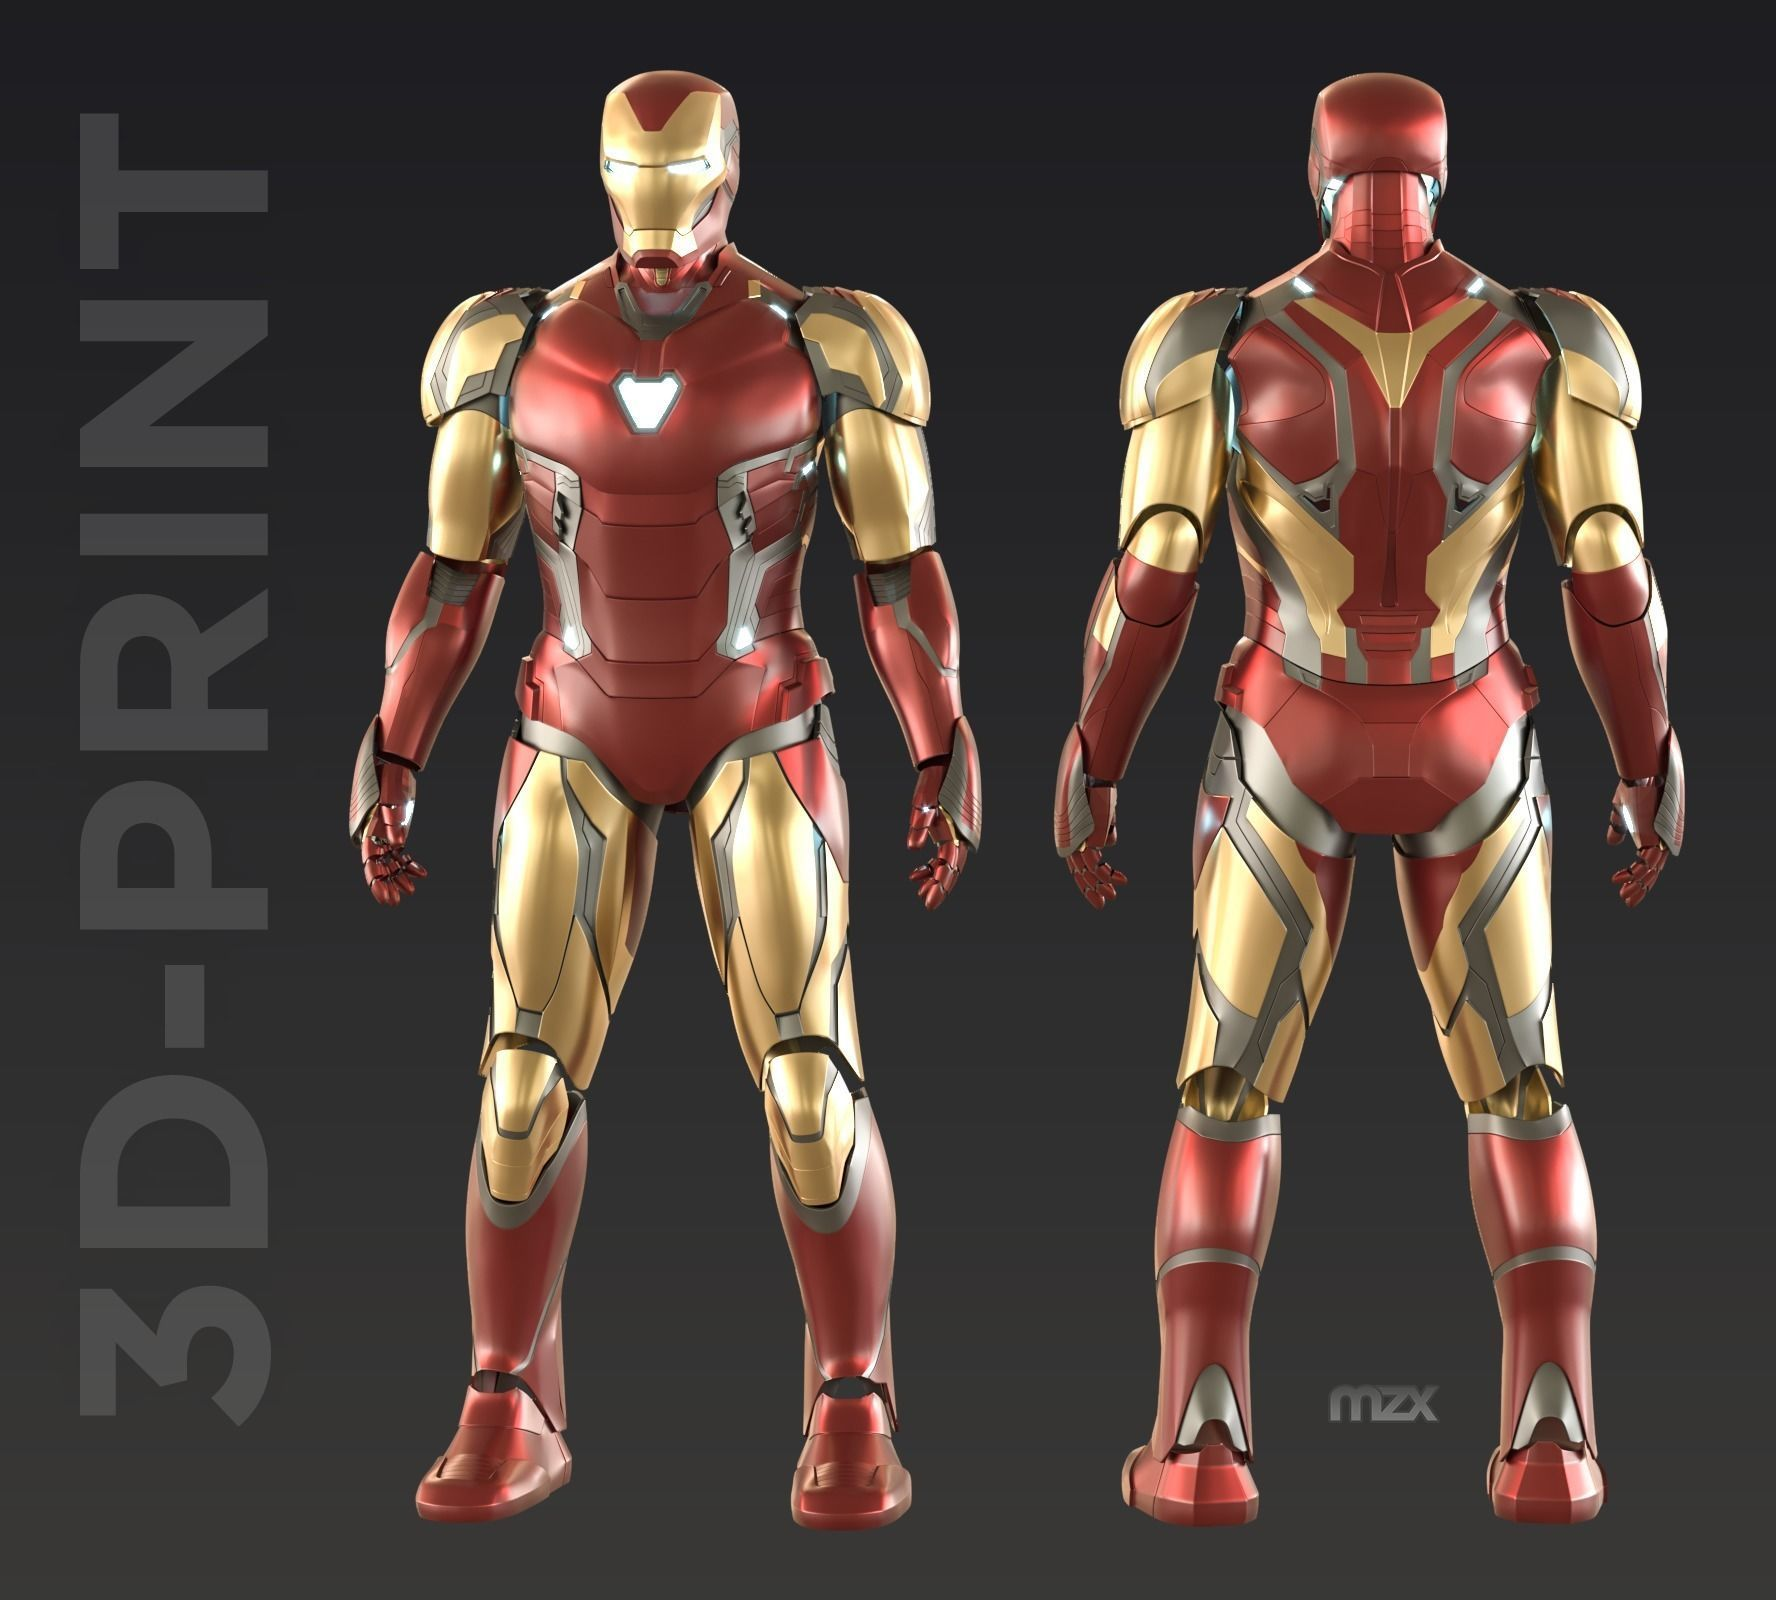 Iron Man Mark 85 wearable suit for 3D-printing DIY | 3D Print Model